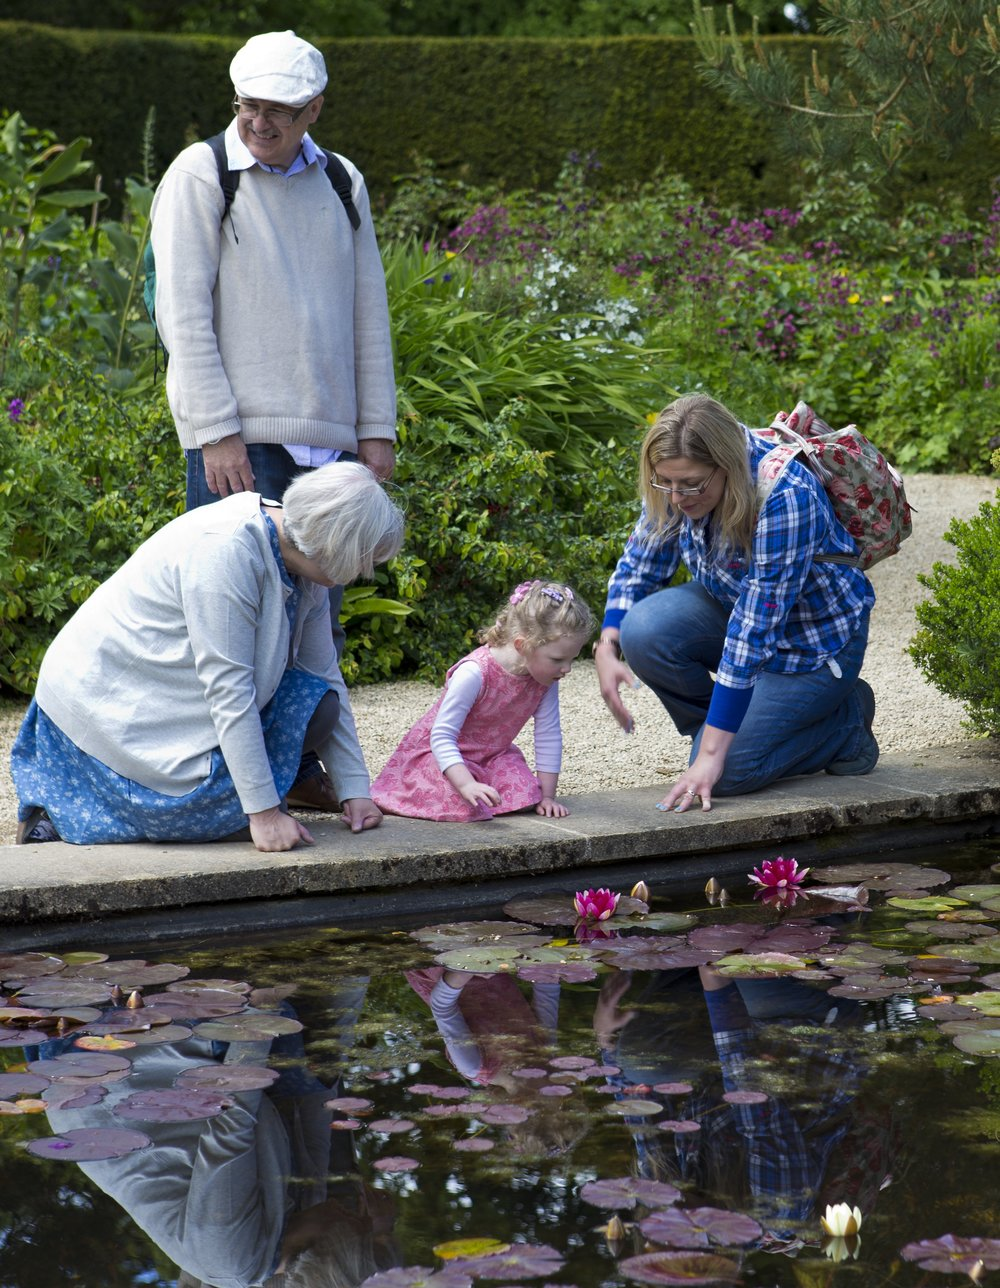 lilly-pond-805207.jpg